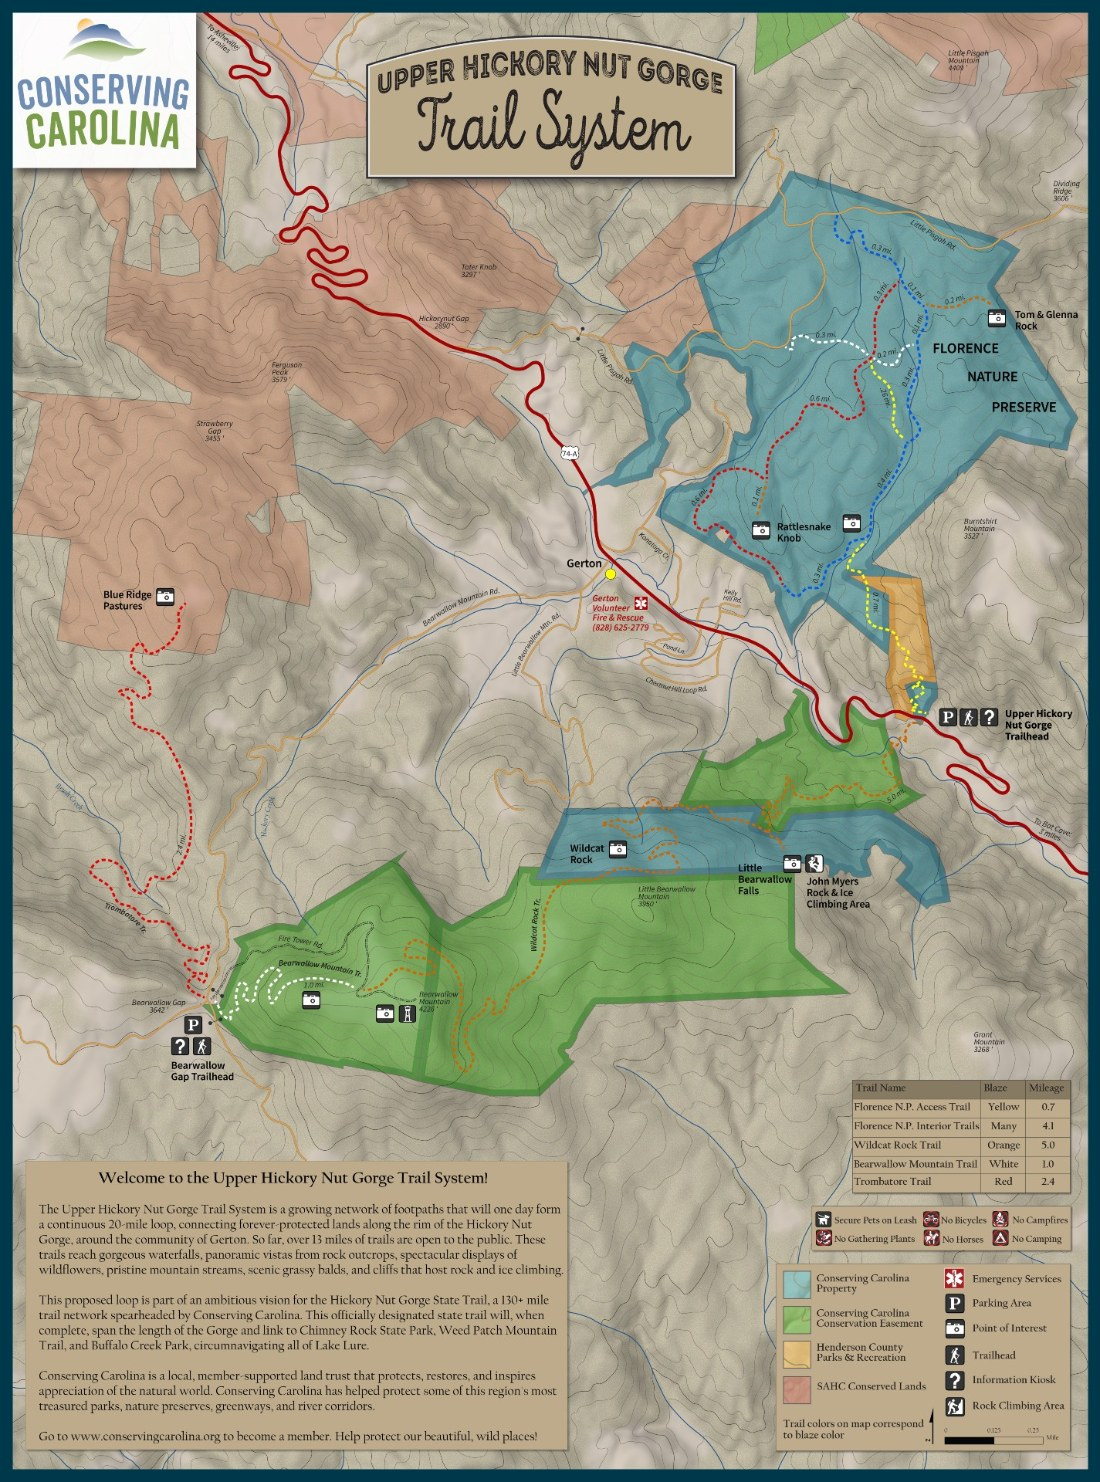 Upper Hickory Nut Gorge Trail Map